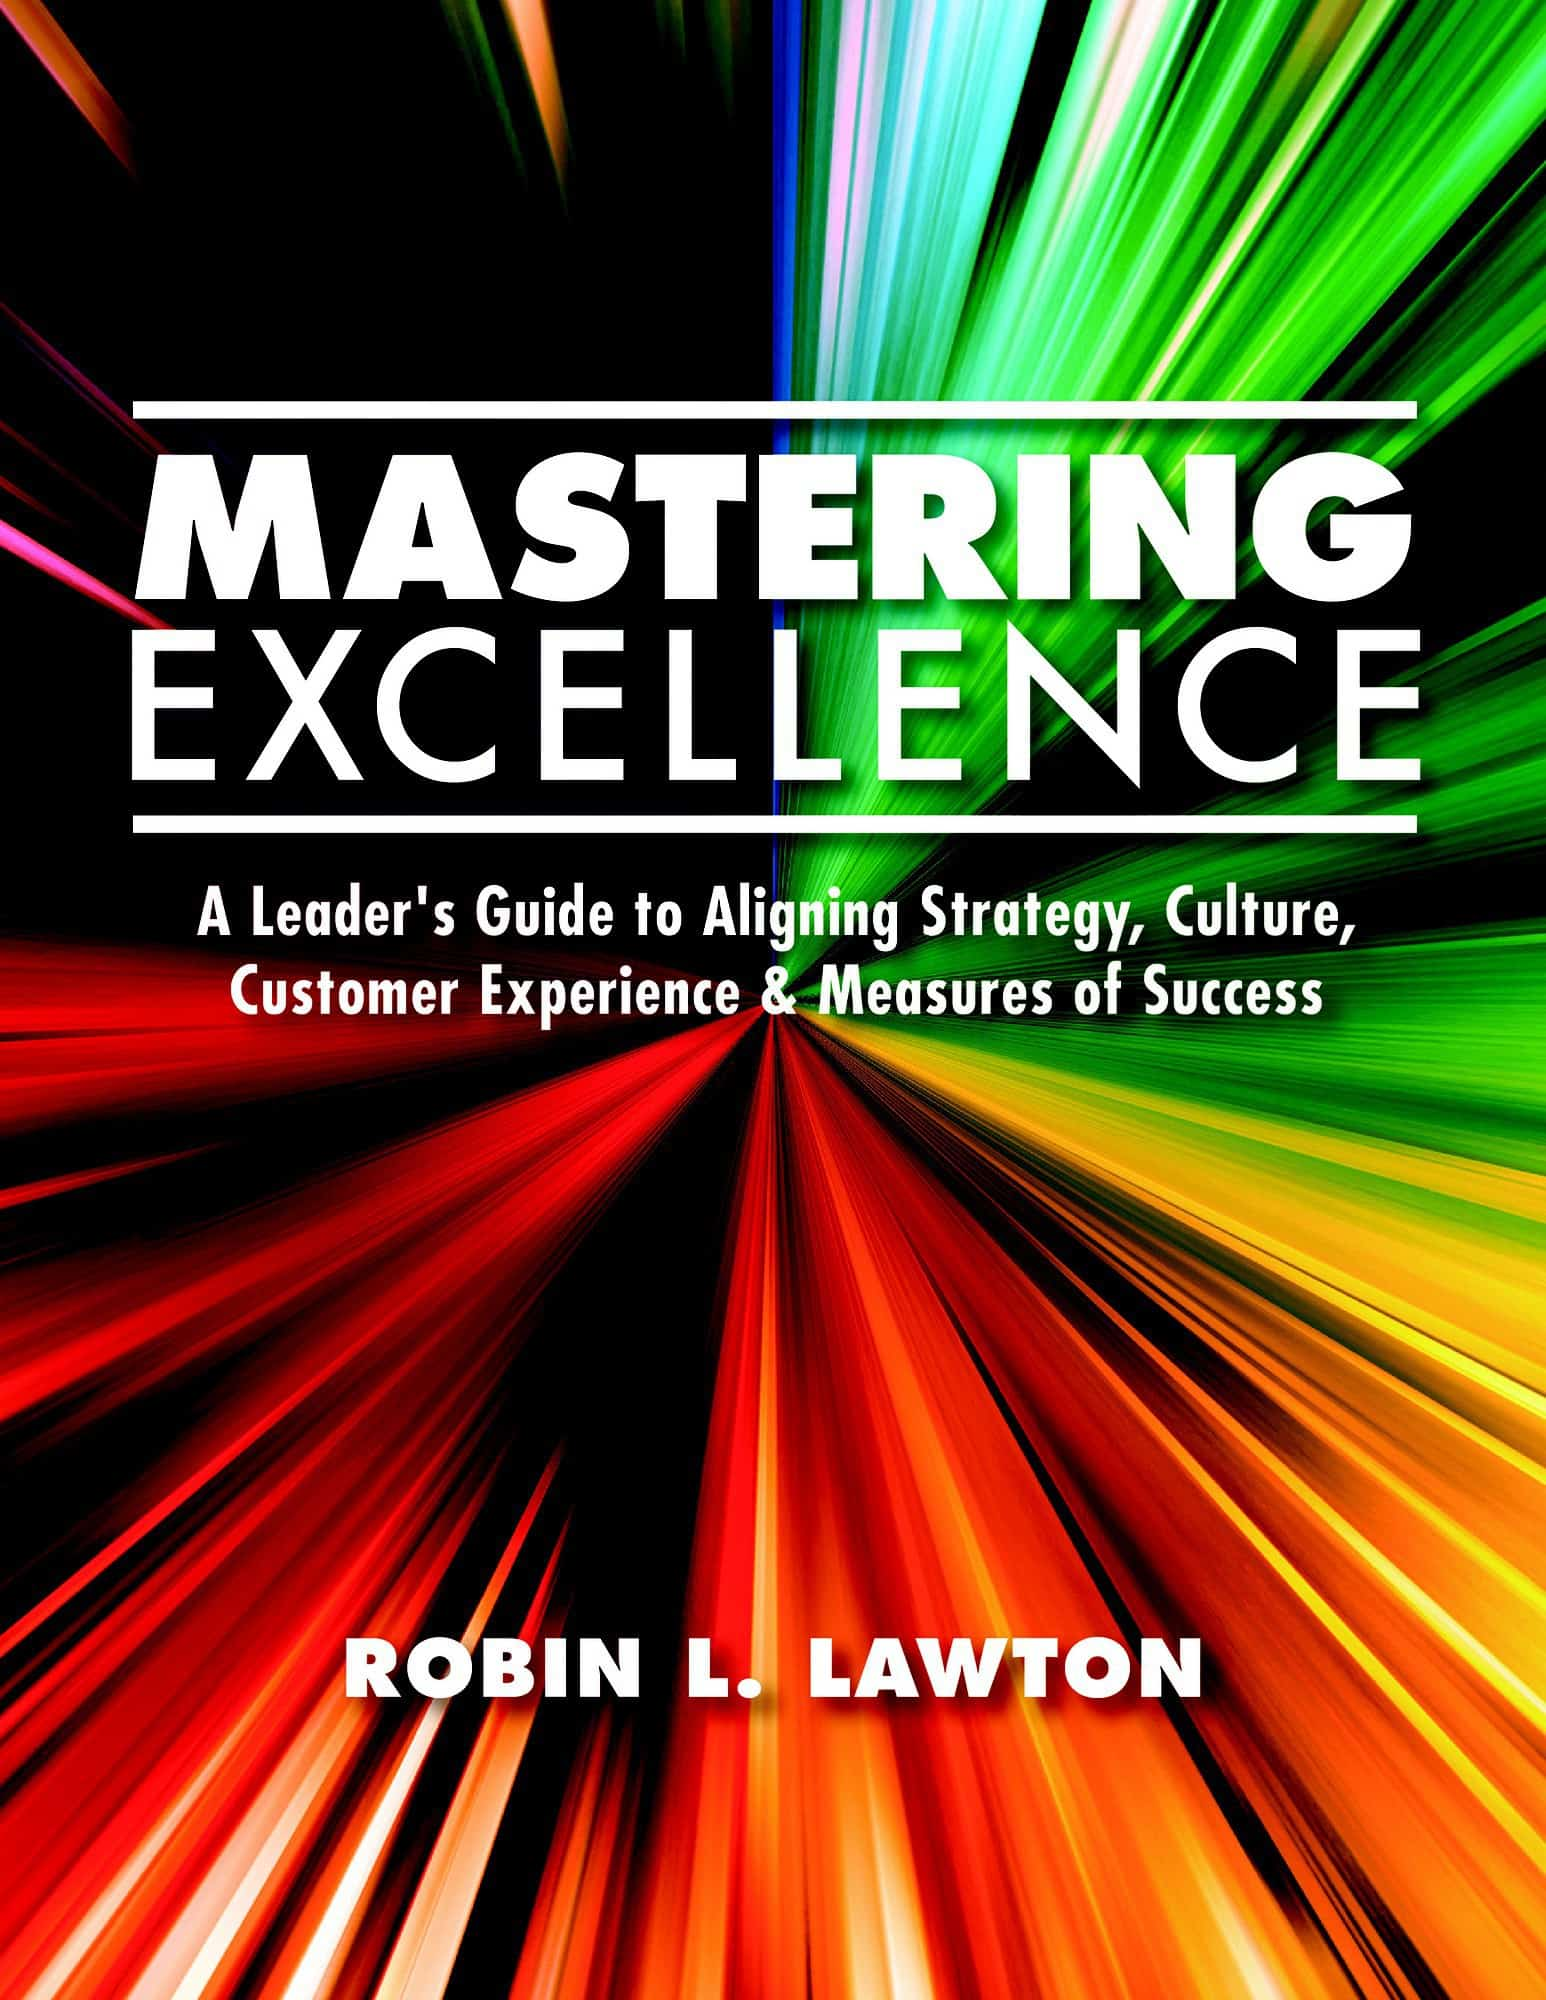 Mastering excellence leaders guide to rapid cultural transformation its a comprehensive holistic blueprint to dramatic change that few would think possible malvernweather Images